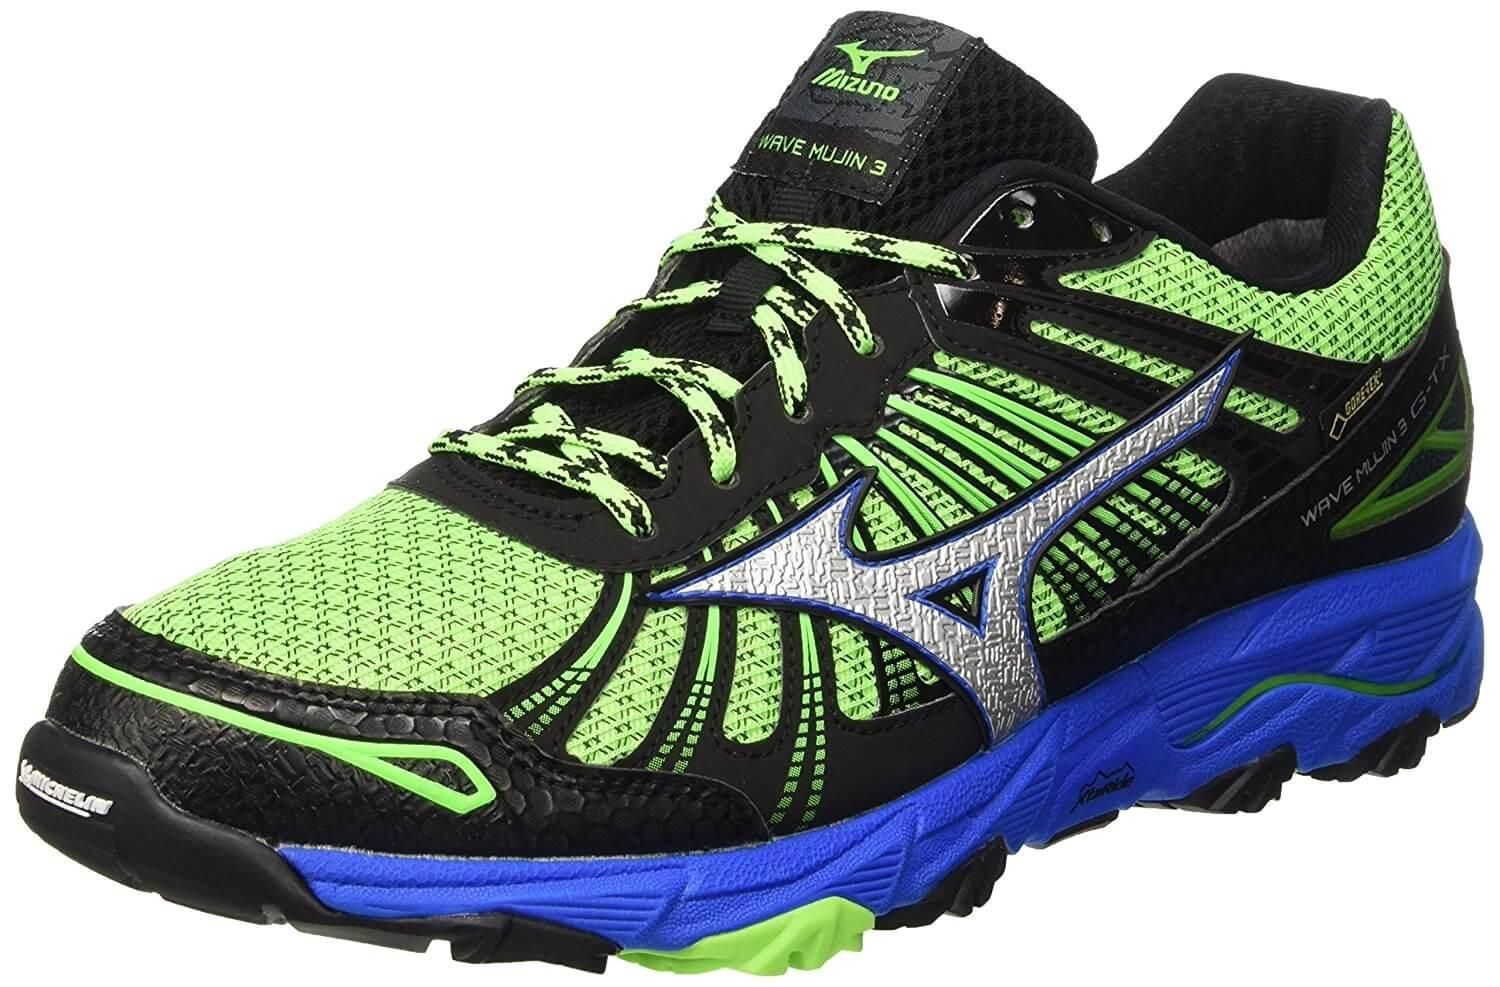 aad9adc636ac Mizuno Wave Mujin 3 GTX | Running Shoes in 2019 | Running shoes for ...